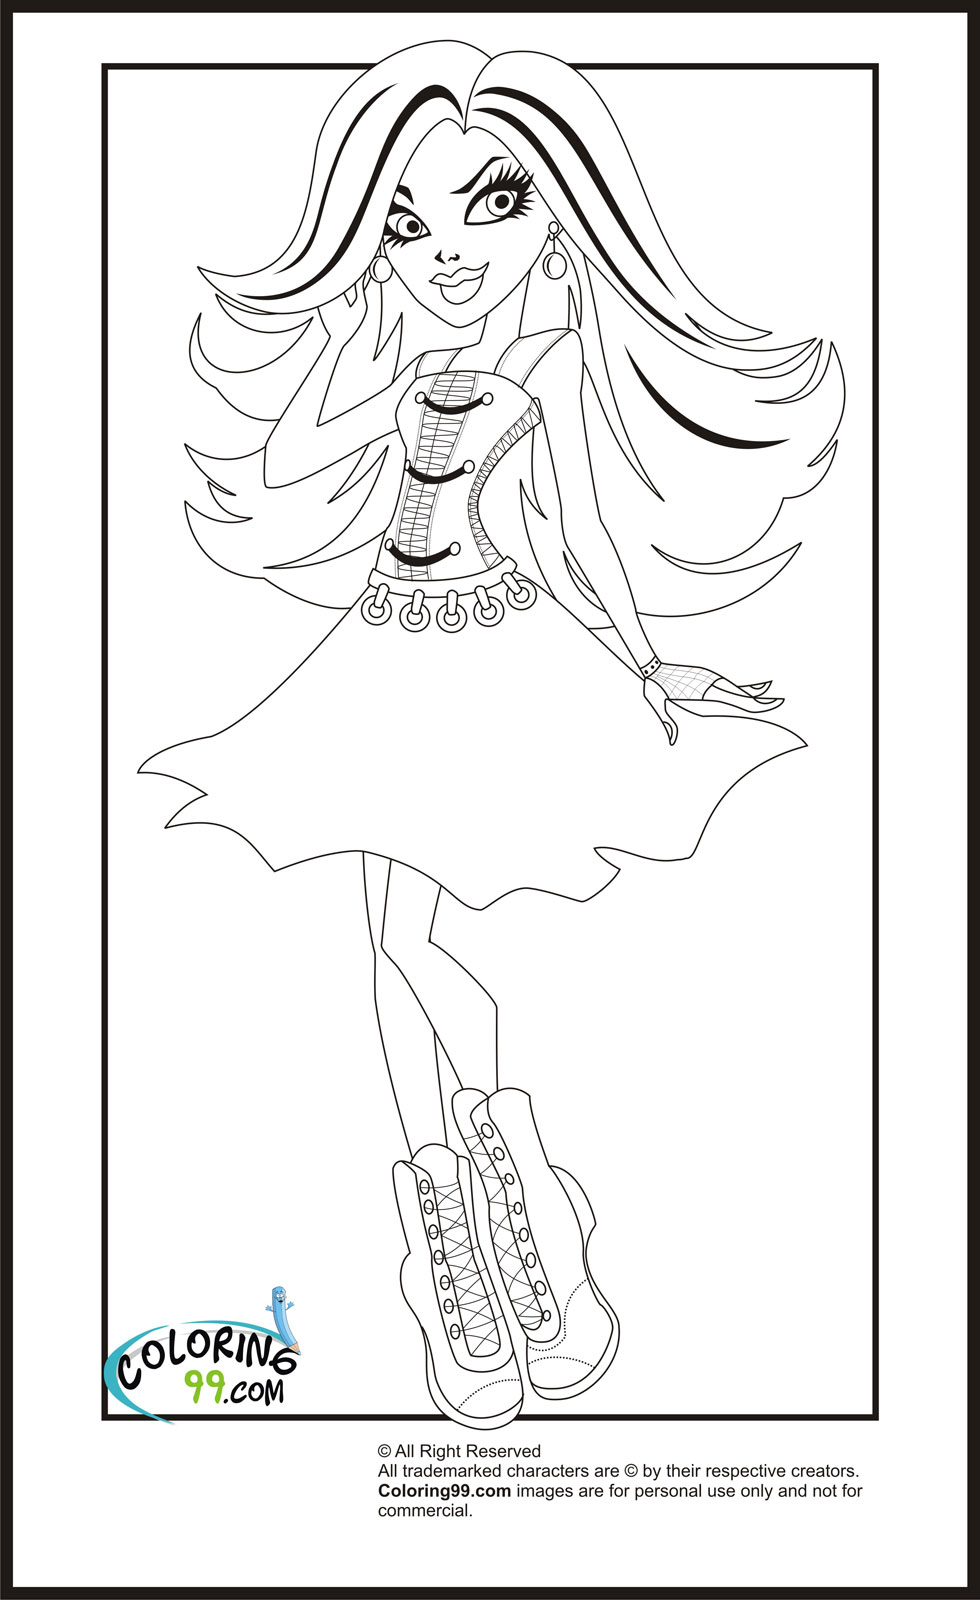 Monster High Spectra Vondergeist Coloring Pages Team Colors High Coloring Pages To Print Out